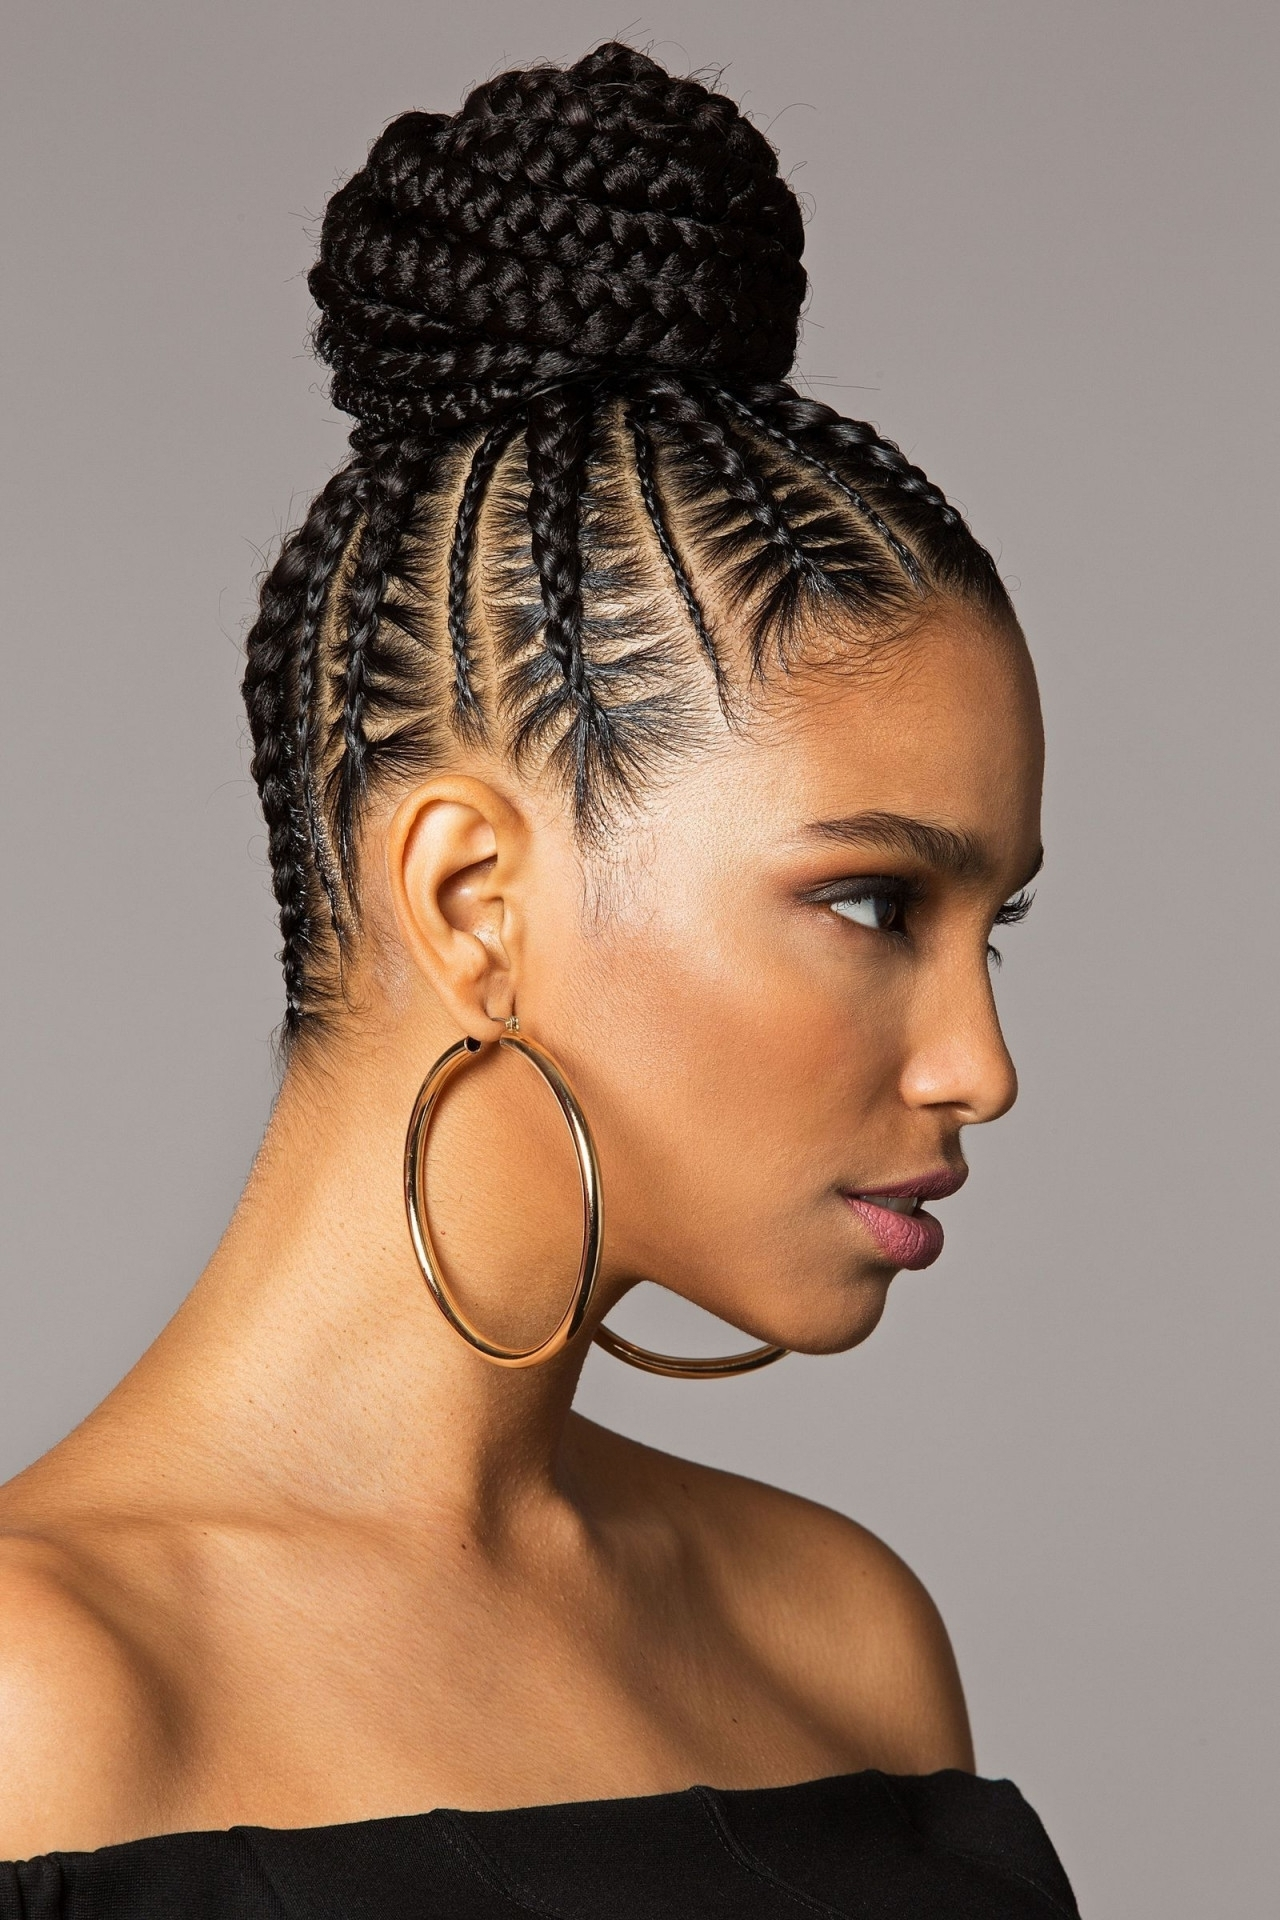 2018 Cornrows Hairstyles With Bangs Within Cornrows Updo Hairstyles With Bangs 2018 – Twelveminutemuse (View 1 of 15)